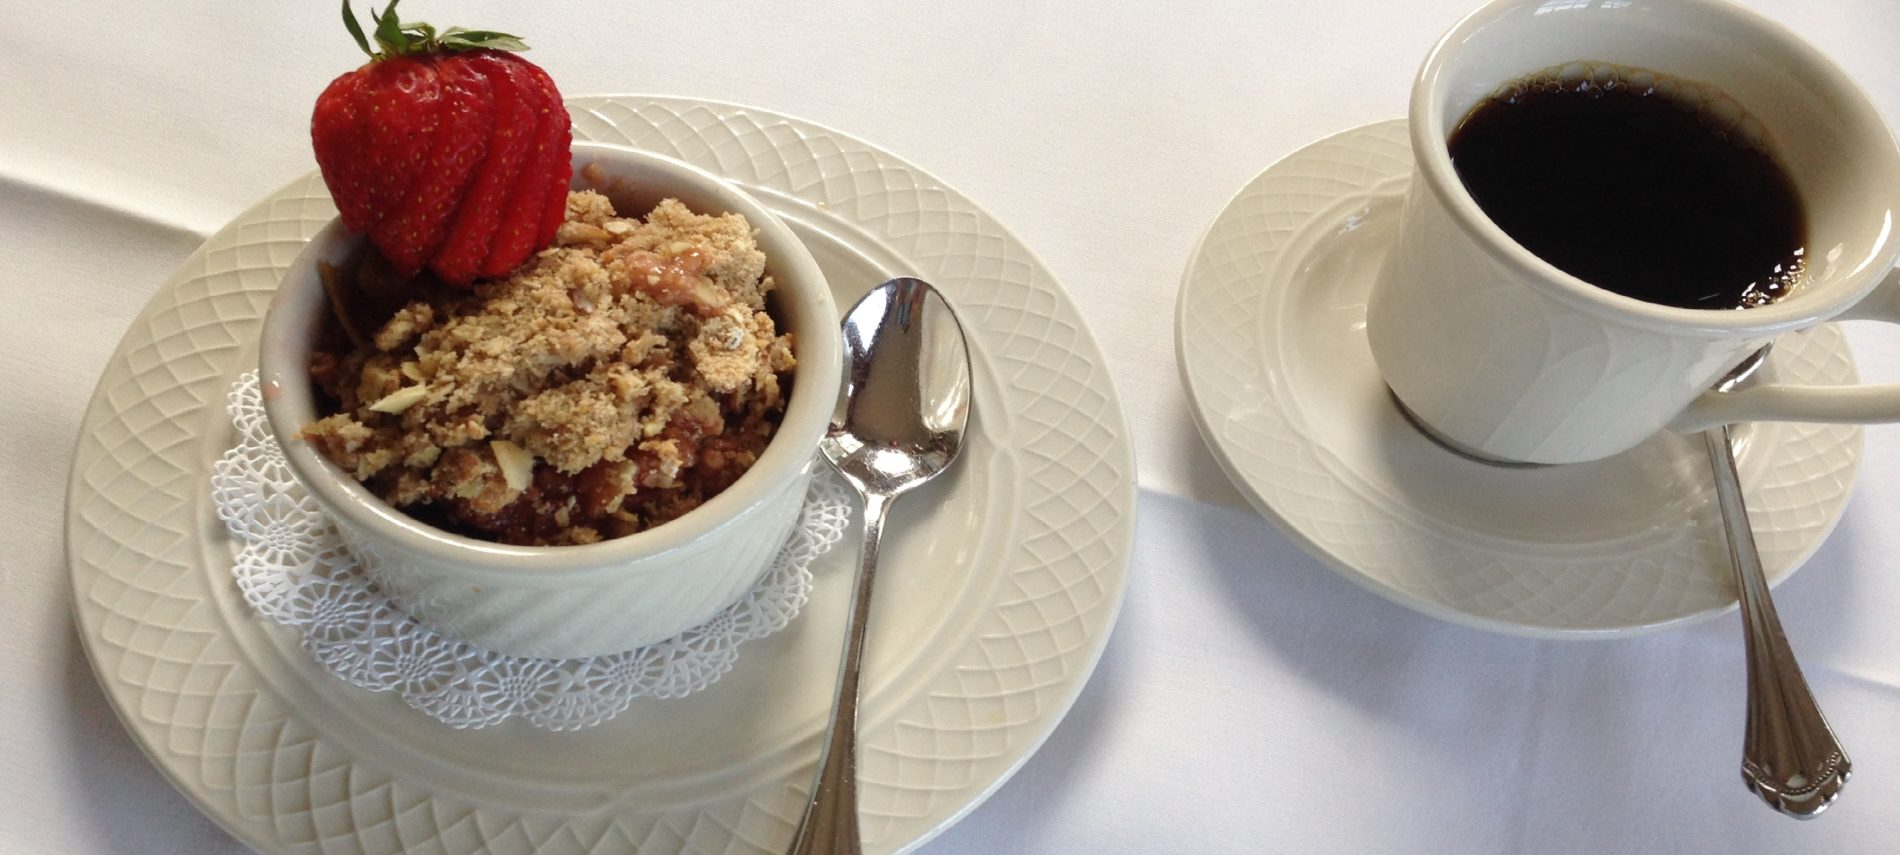 Strawberry Rhubarb Crisp and Coffee from Chesterfield Inn